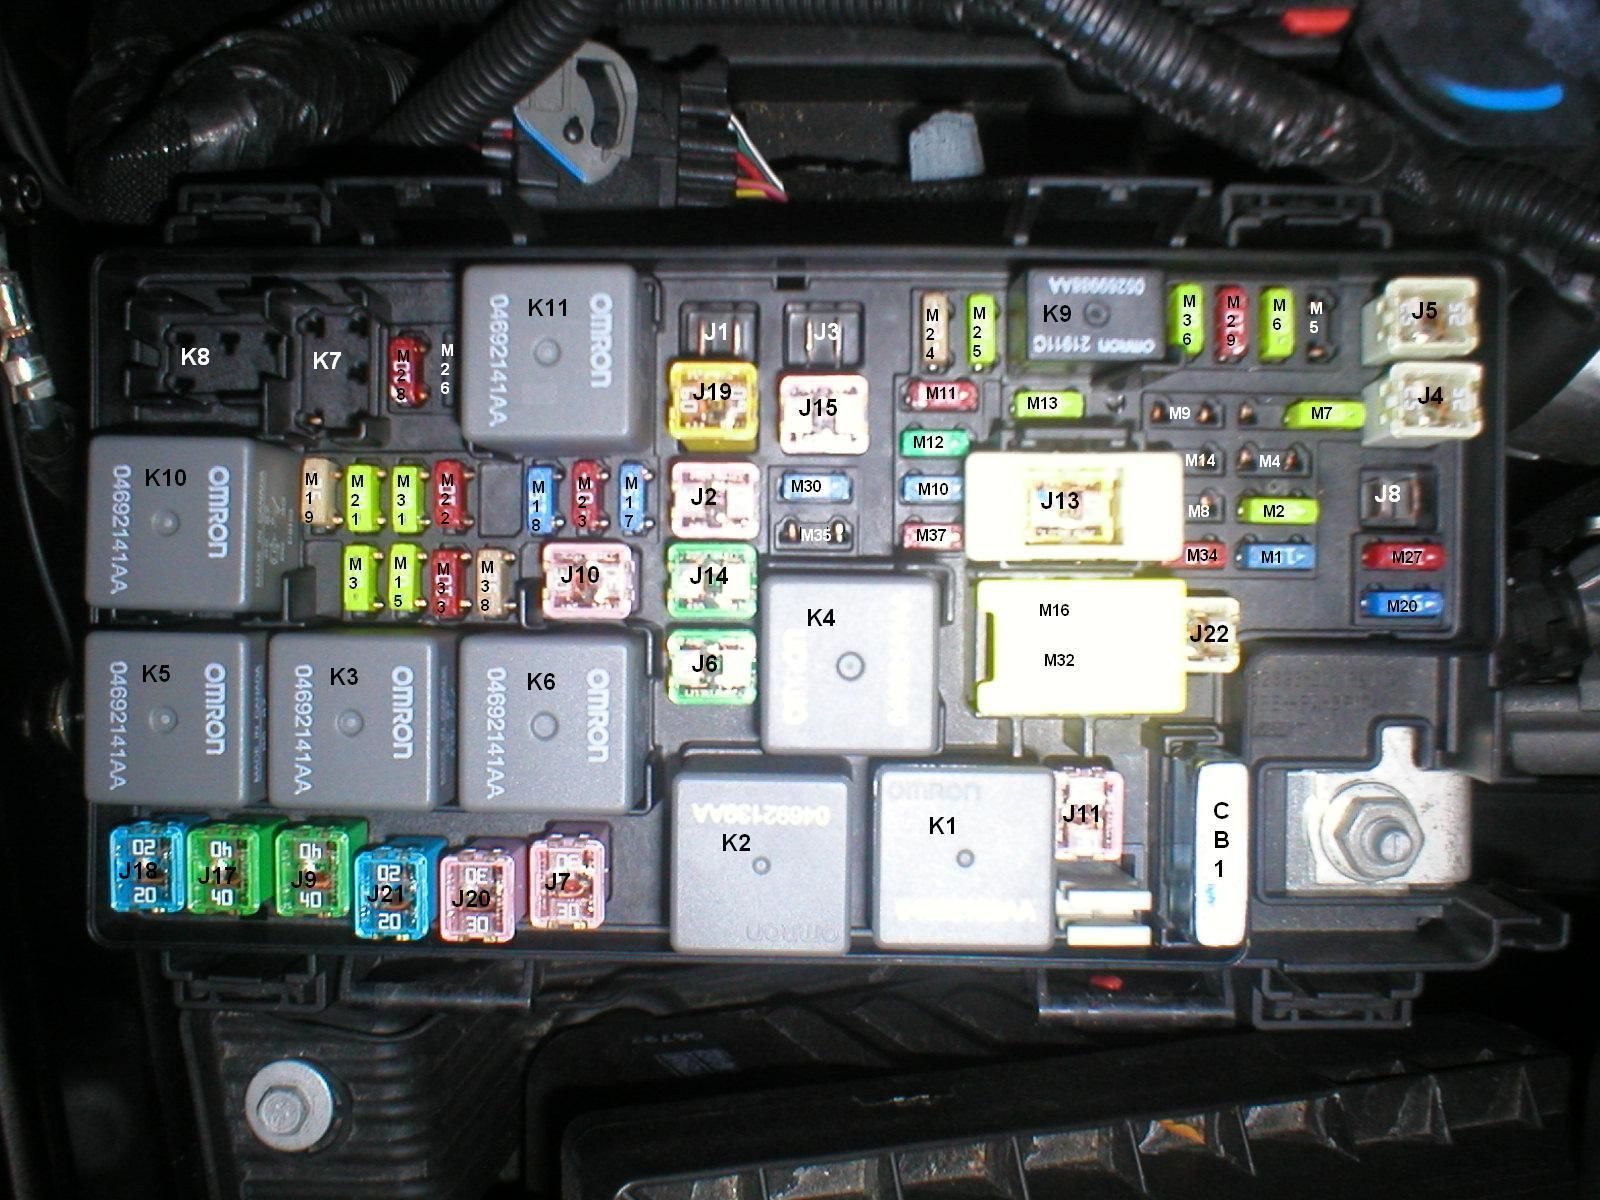 jeep jk fuse box map layout diagram jeepforum com just empty rh pinterest com 2015 jeep wrangler jk fuse box diagram 2015 jeep wrangler unlimited fuse box diagram